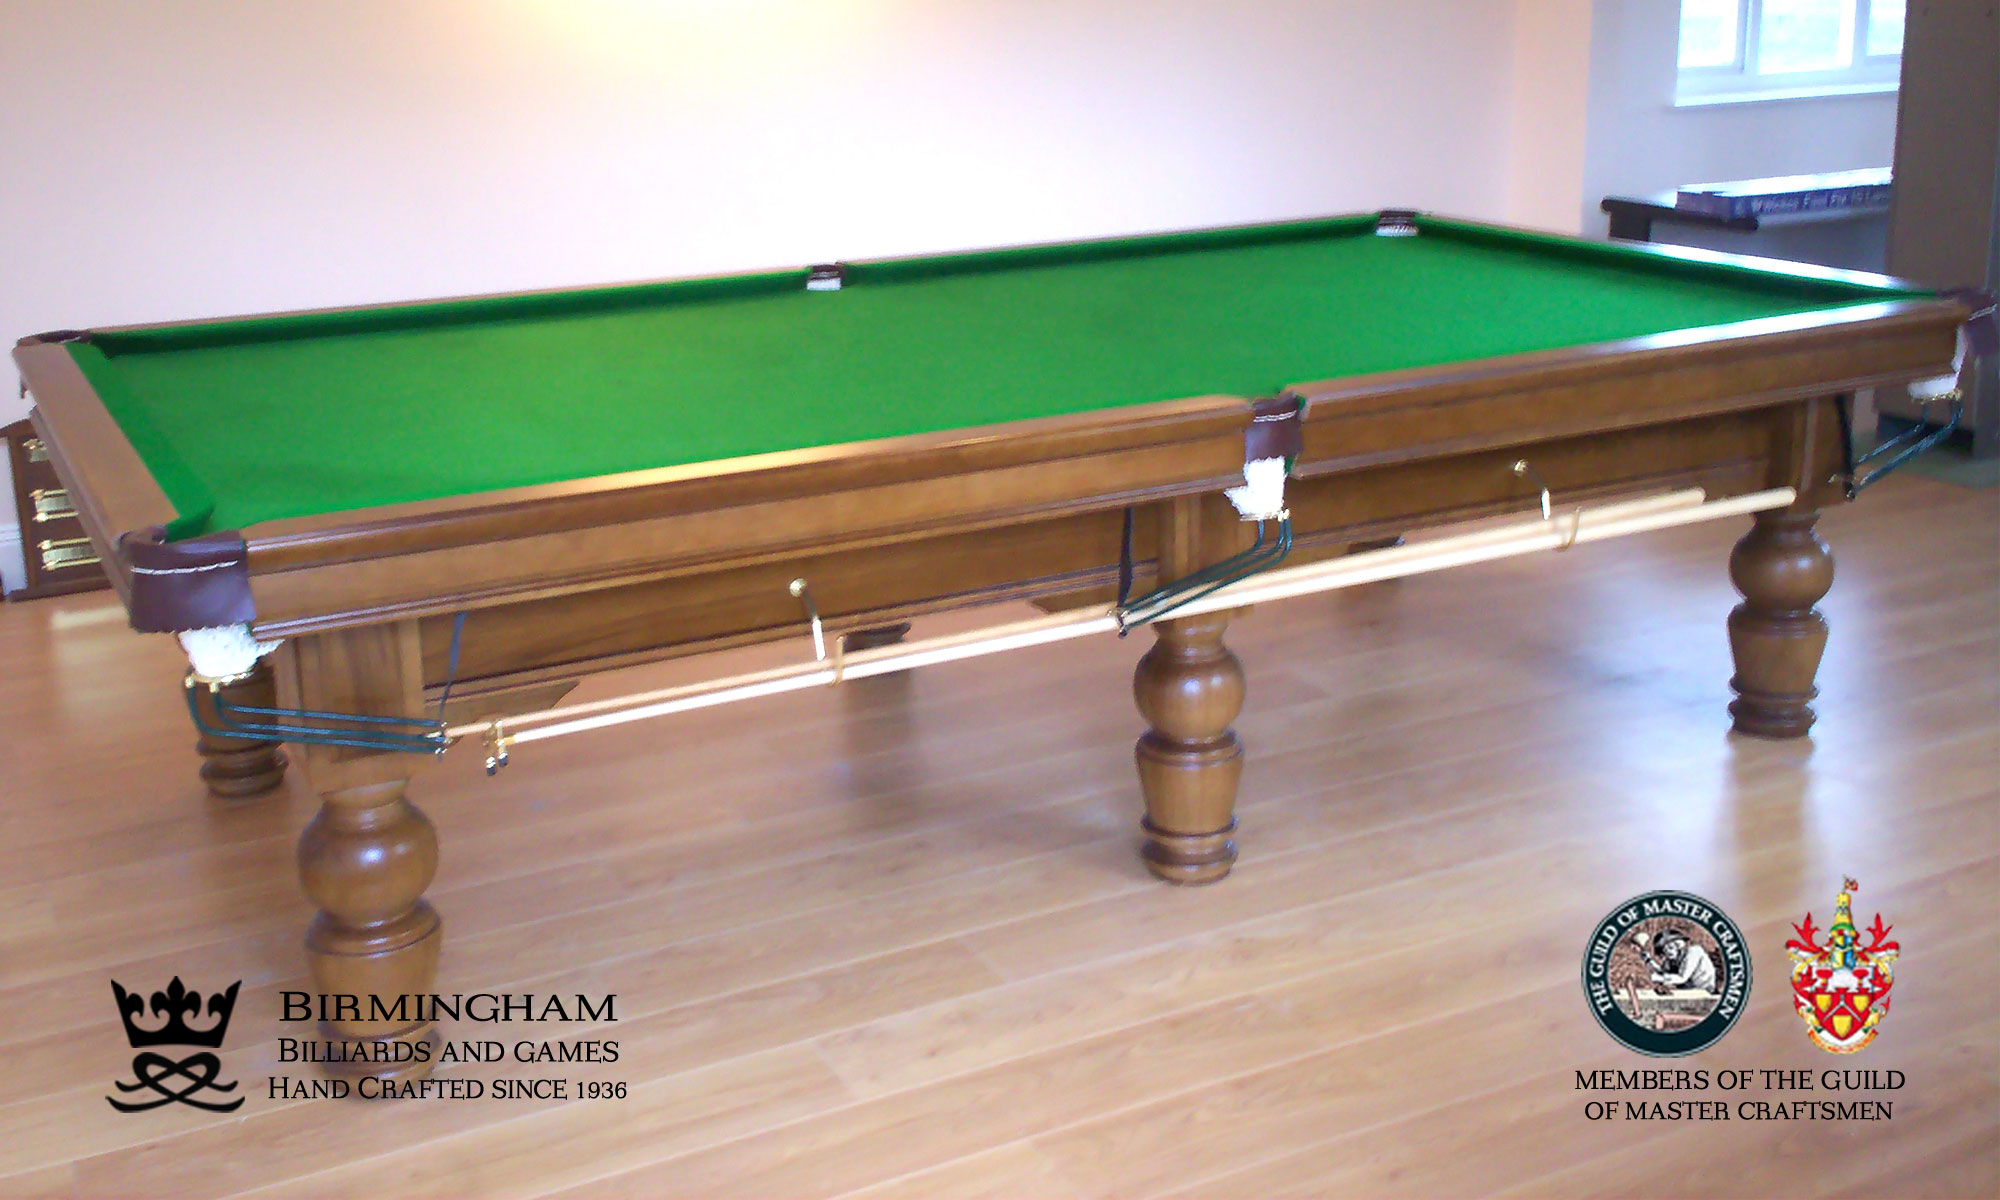 Timeless classic pool table, sovereign style, walnut finish